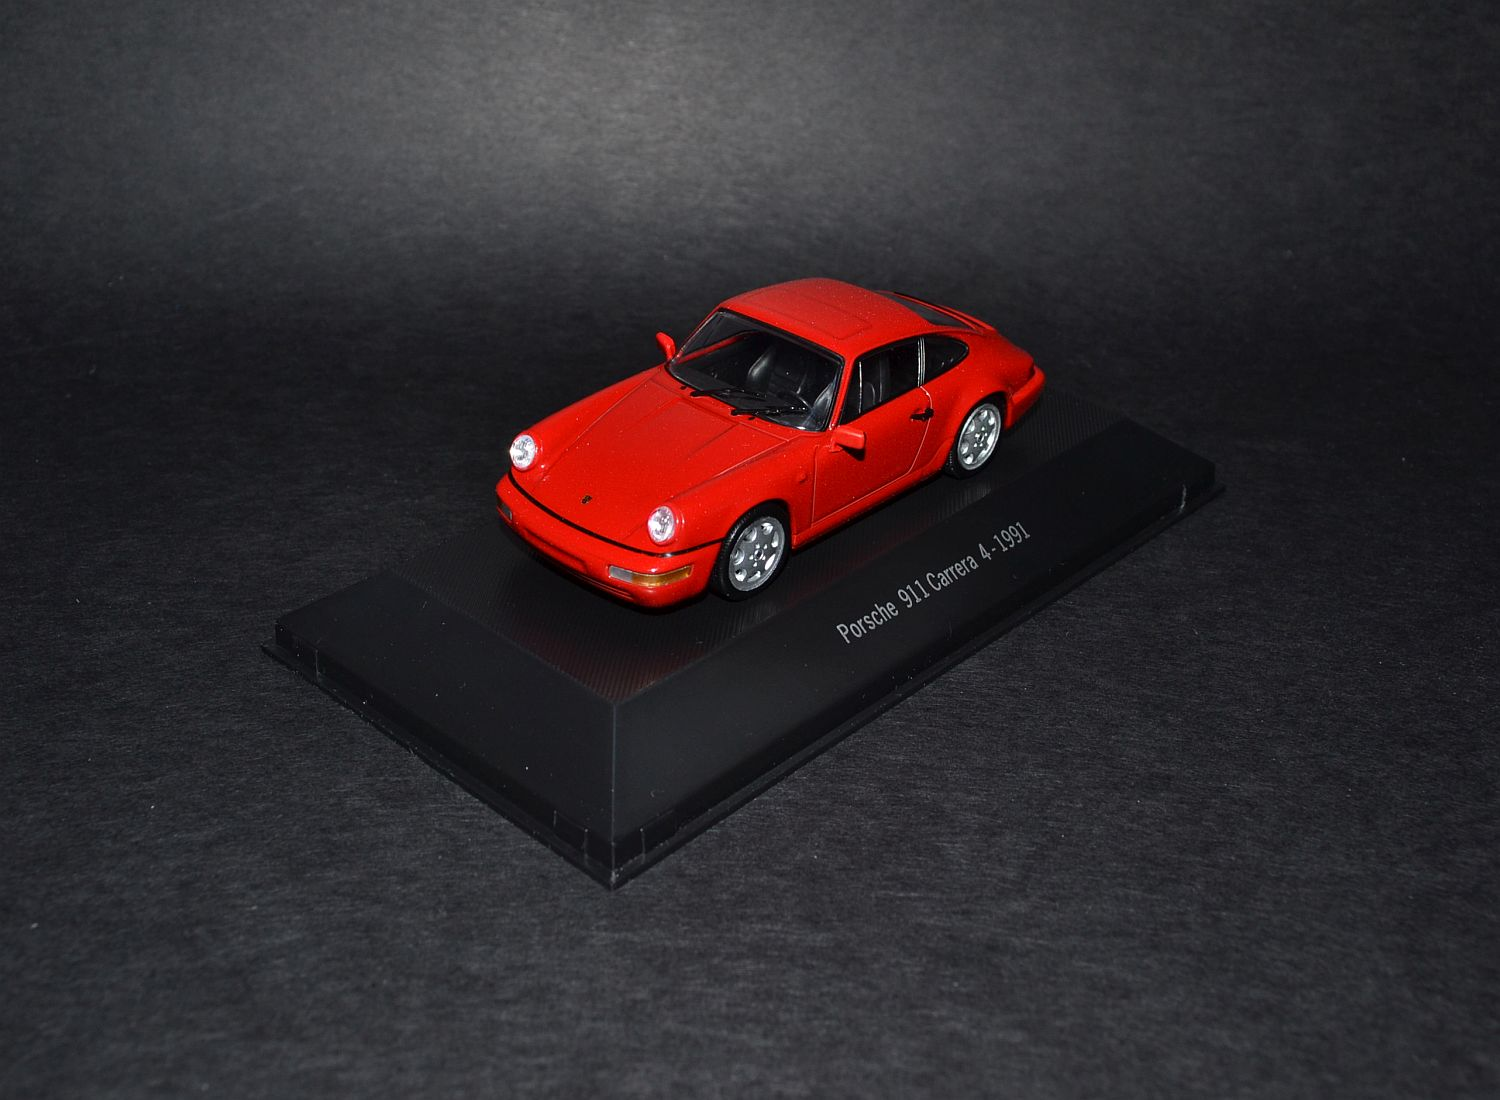 Porsche 911 typ 964, part one